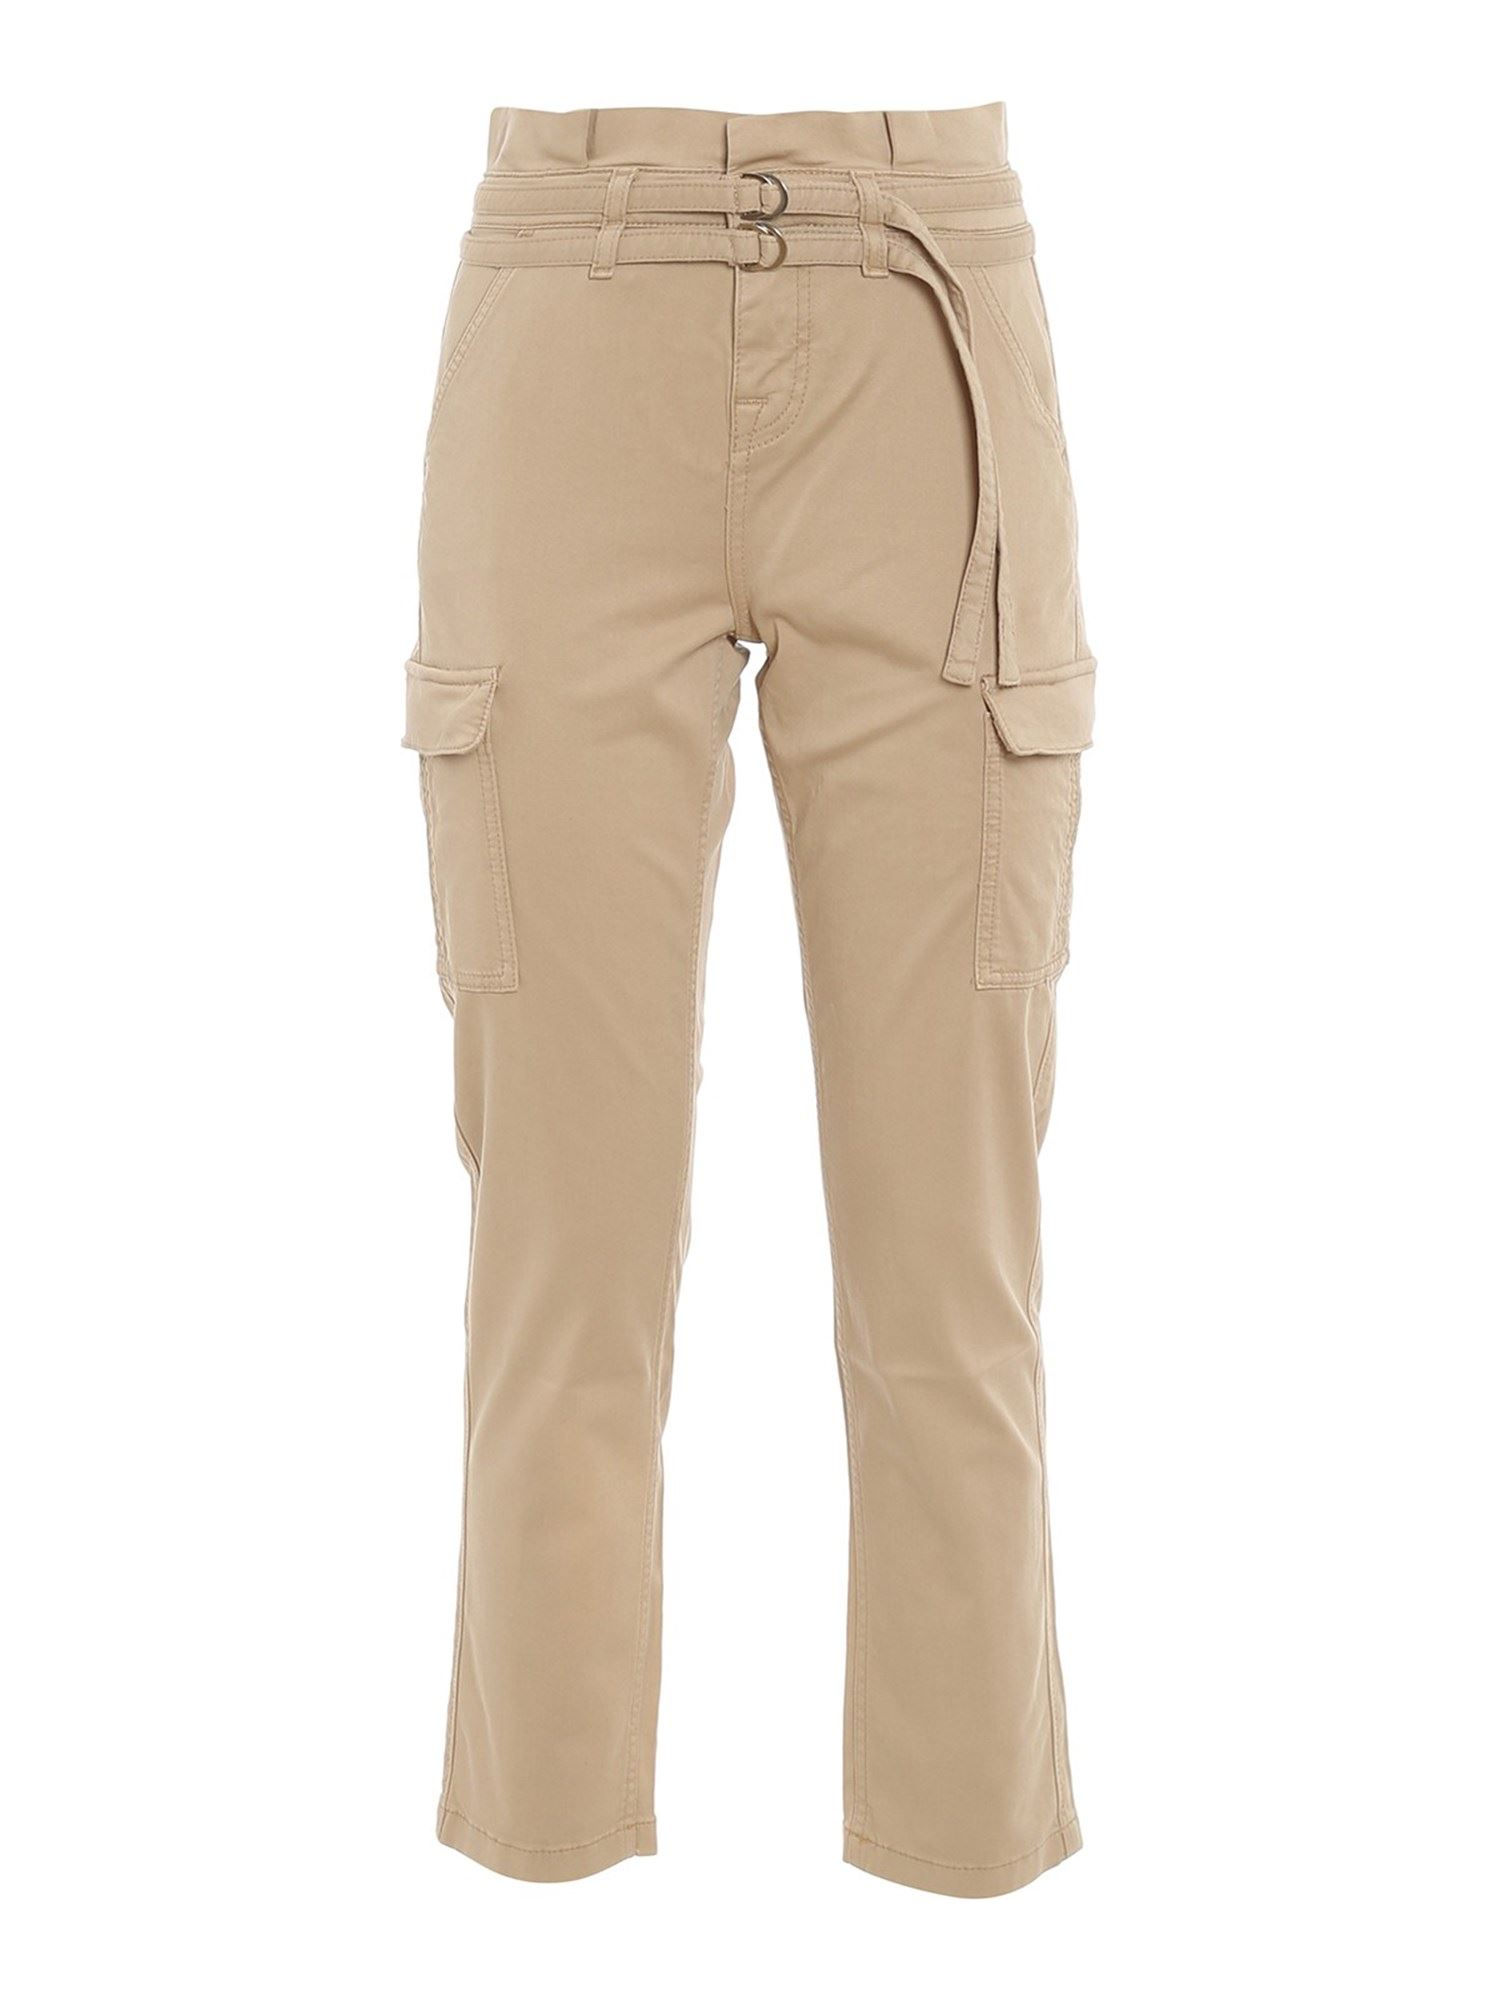 7 For All Mankind Cottons PAPERBAG CARGO TROUSERS IN BEIGE